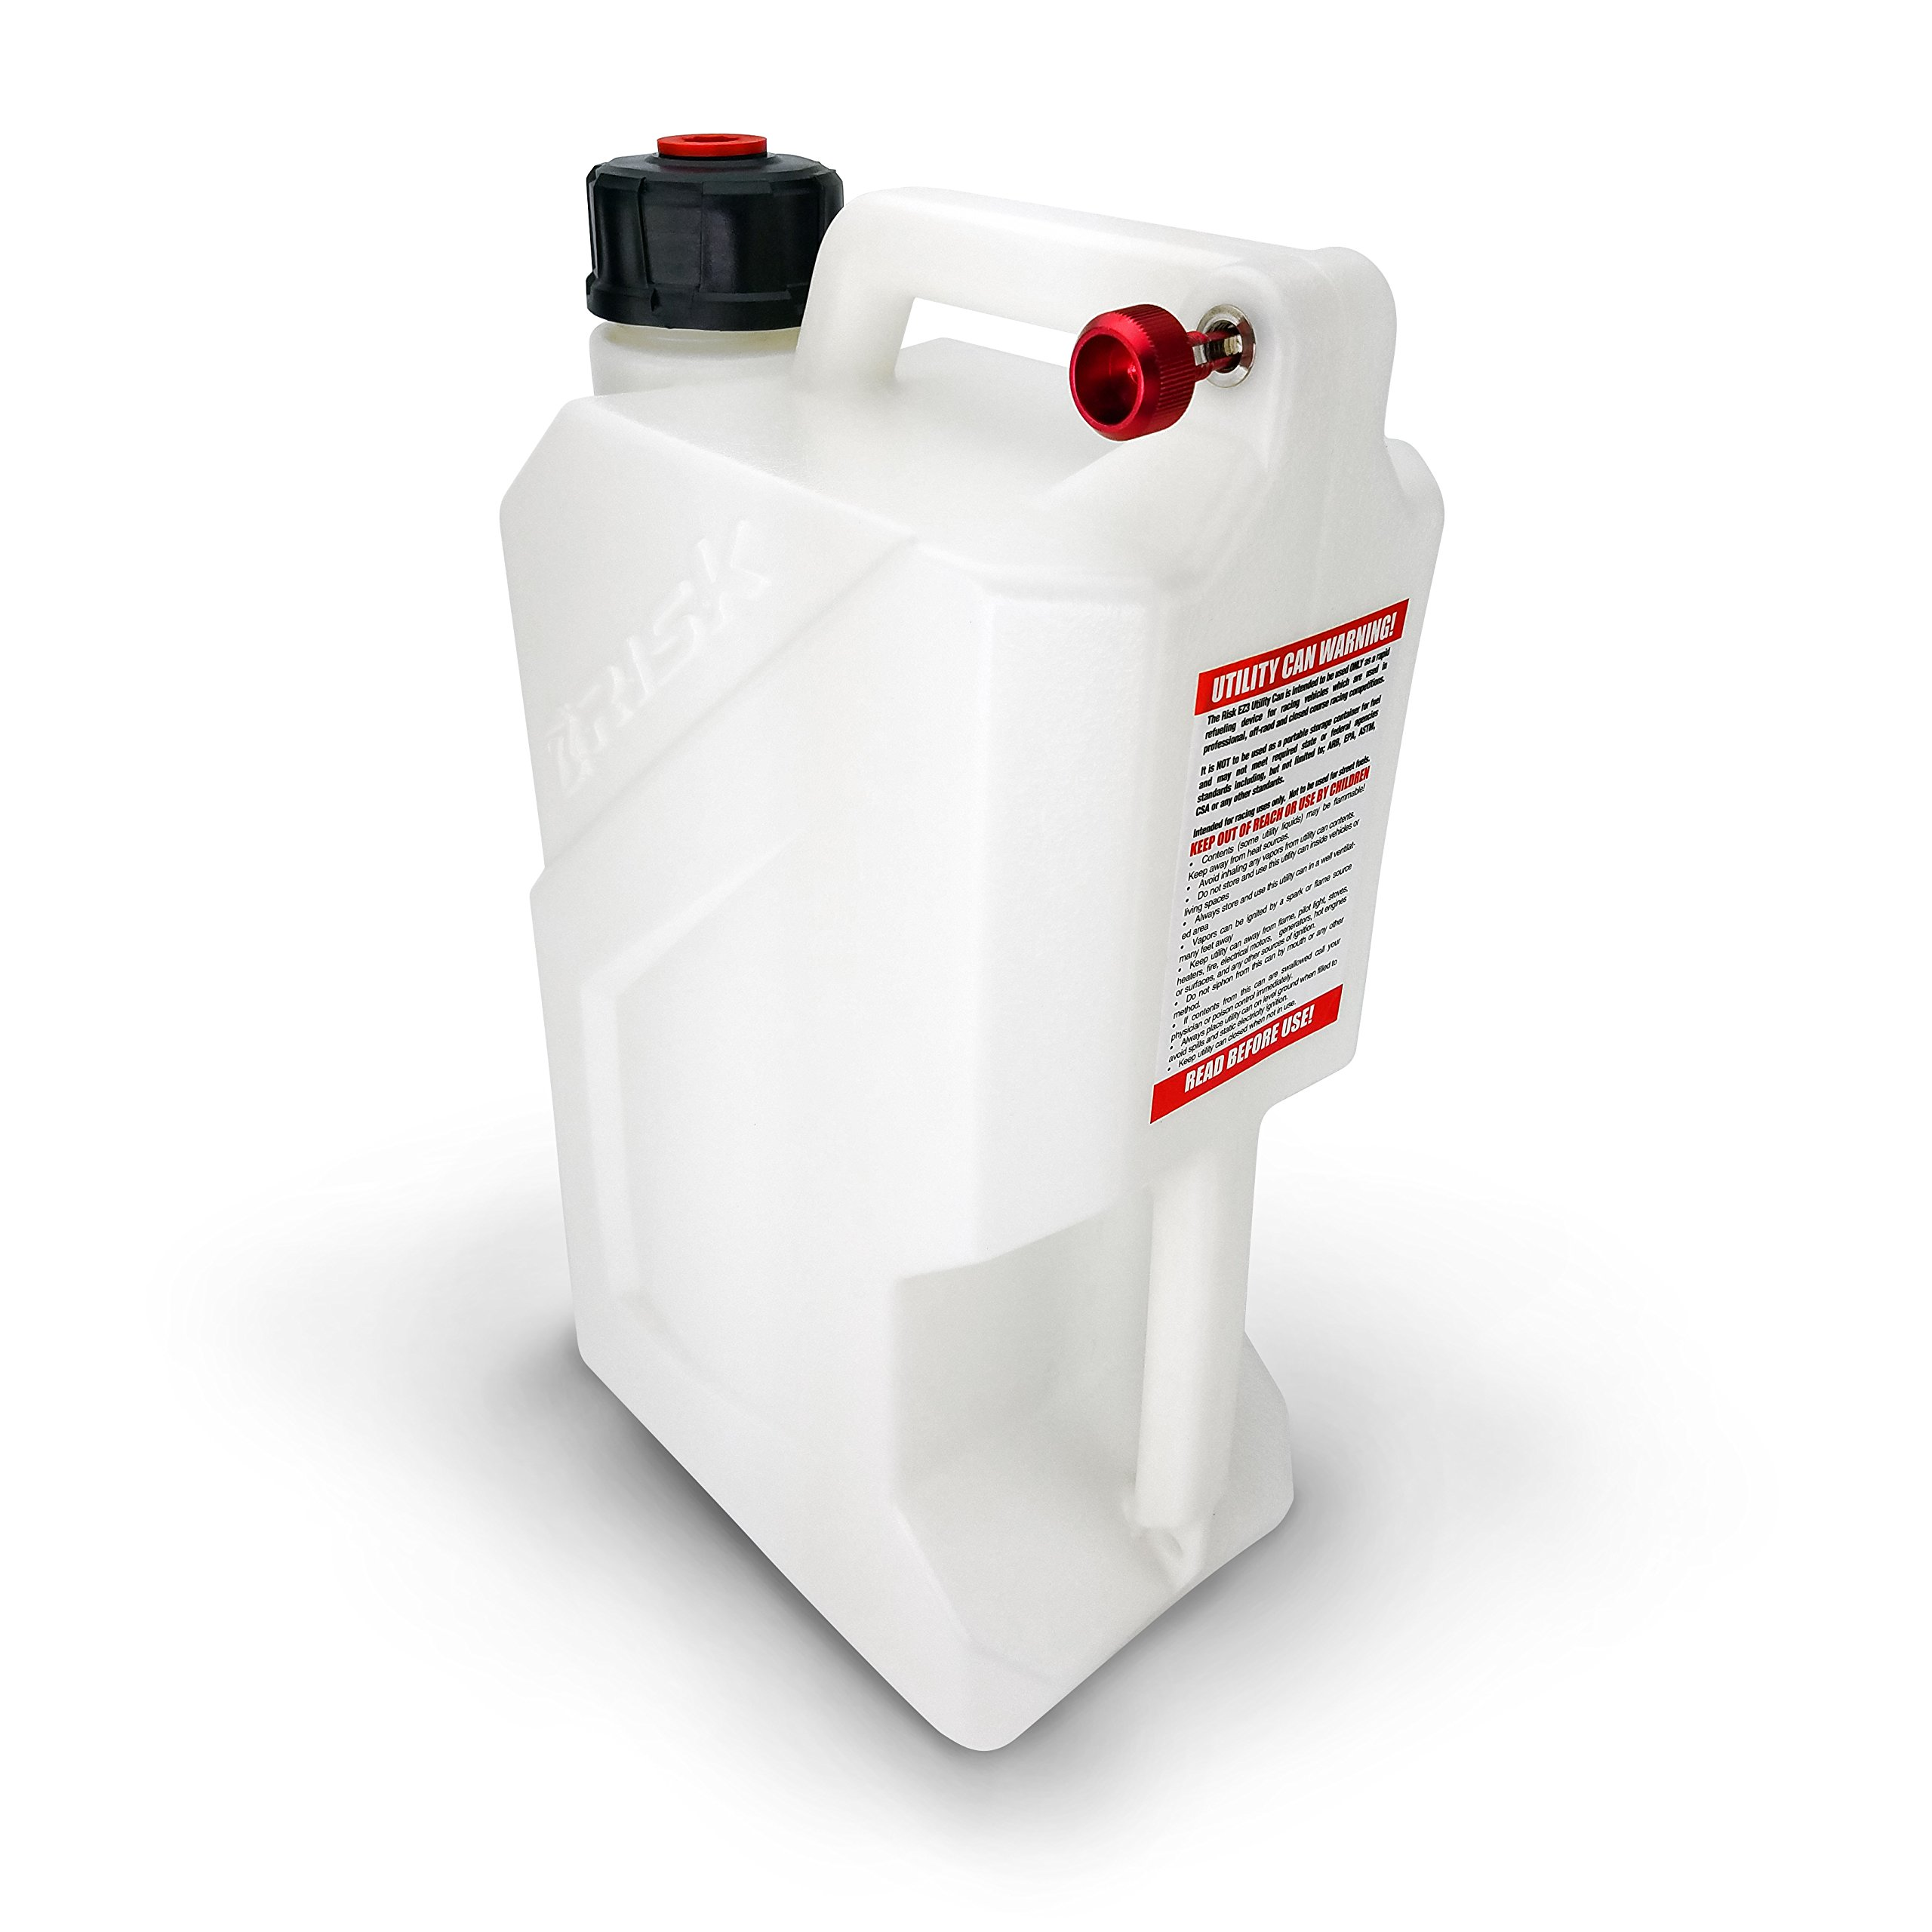 Risk Racing 00144 White EZ3 Utility Jug by Risk Racing (Image #2)